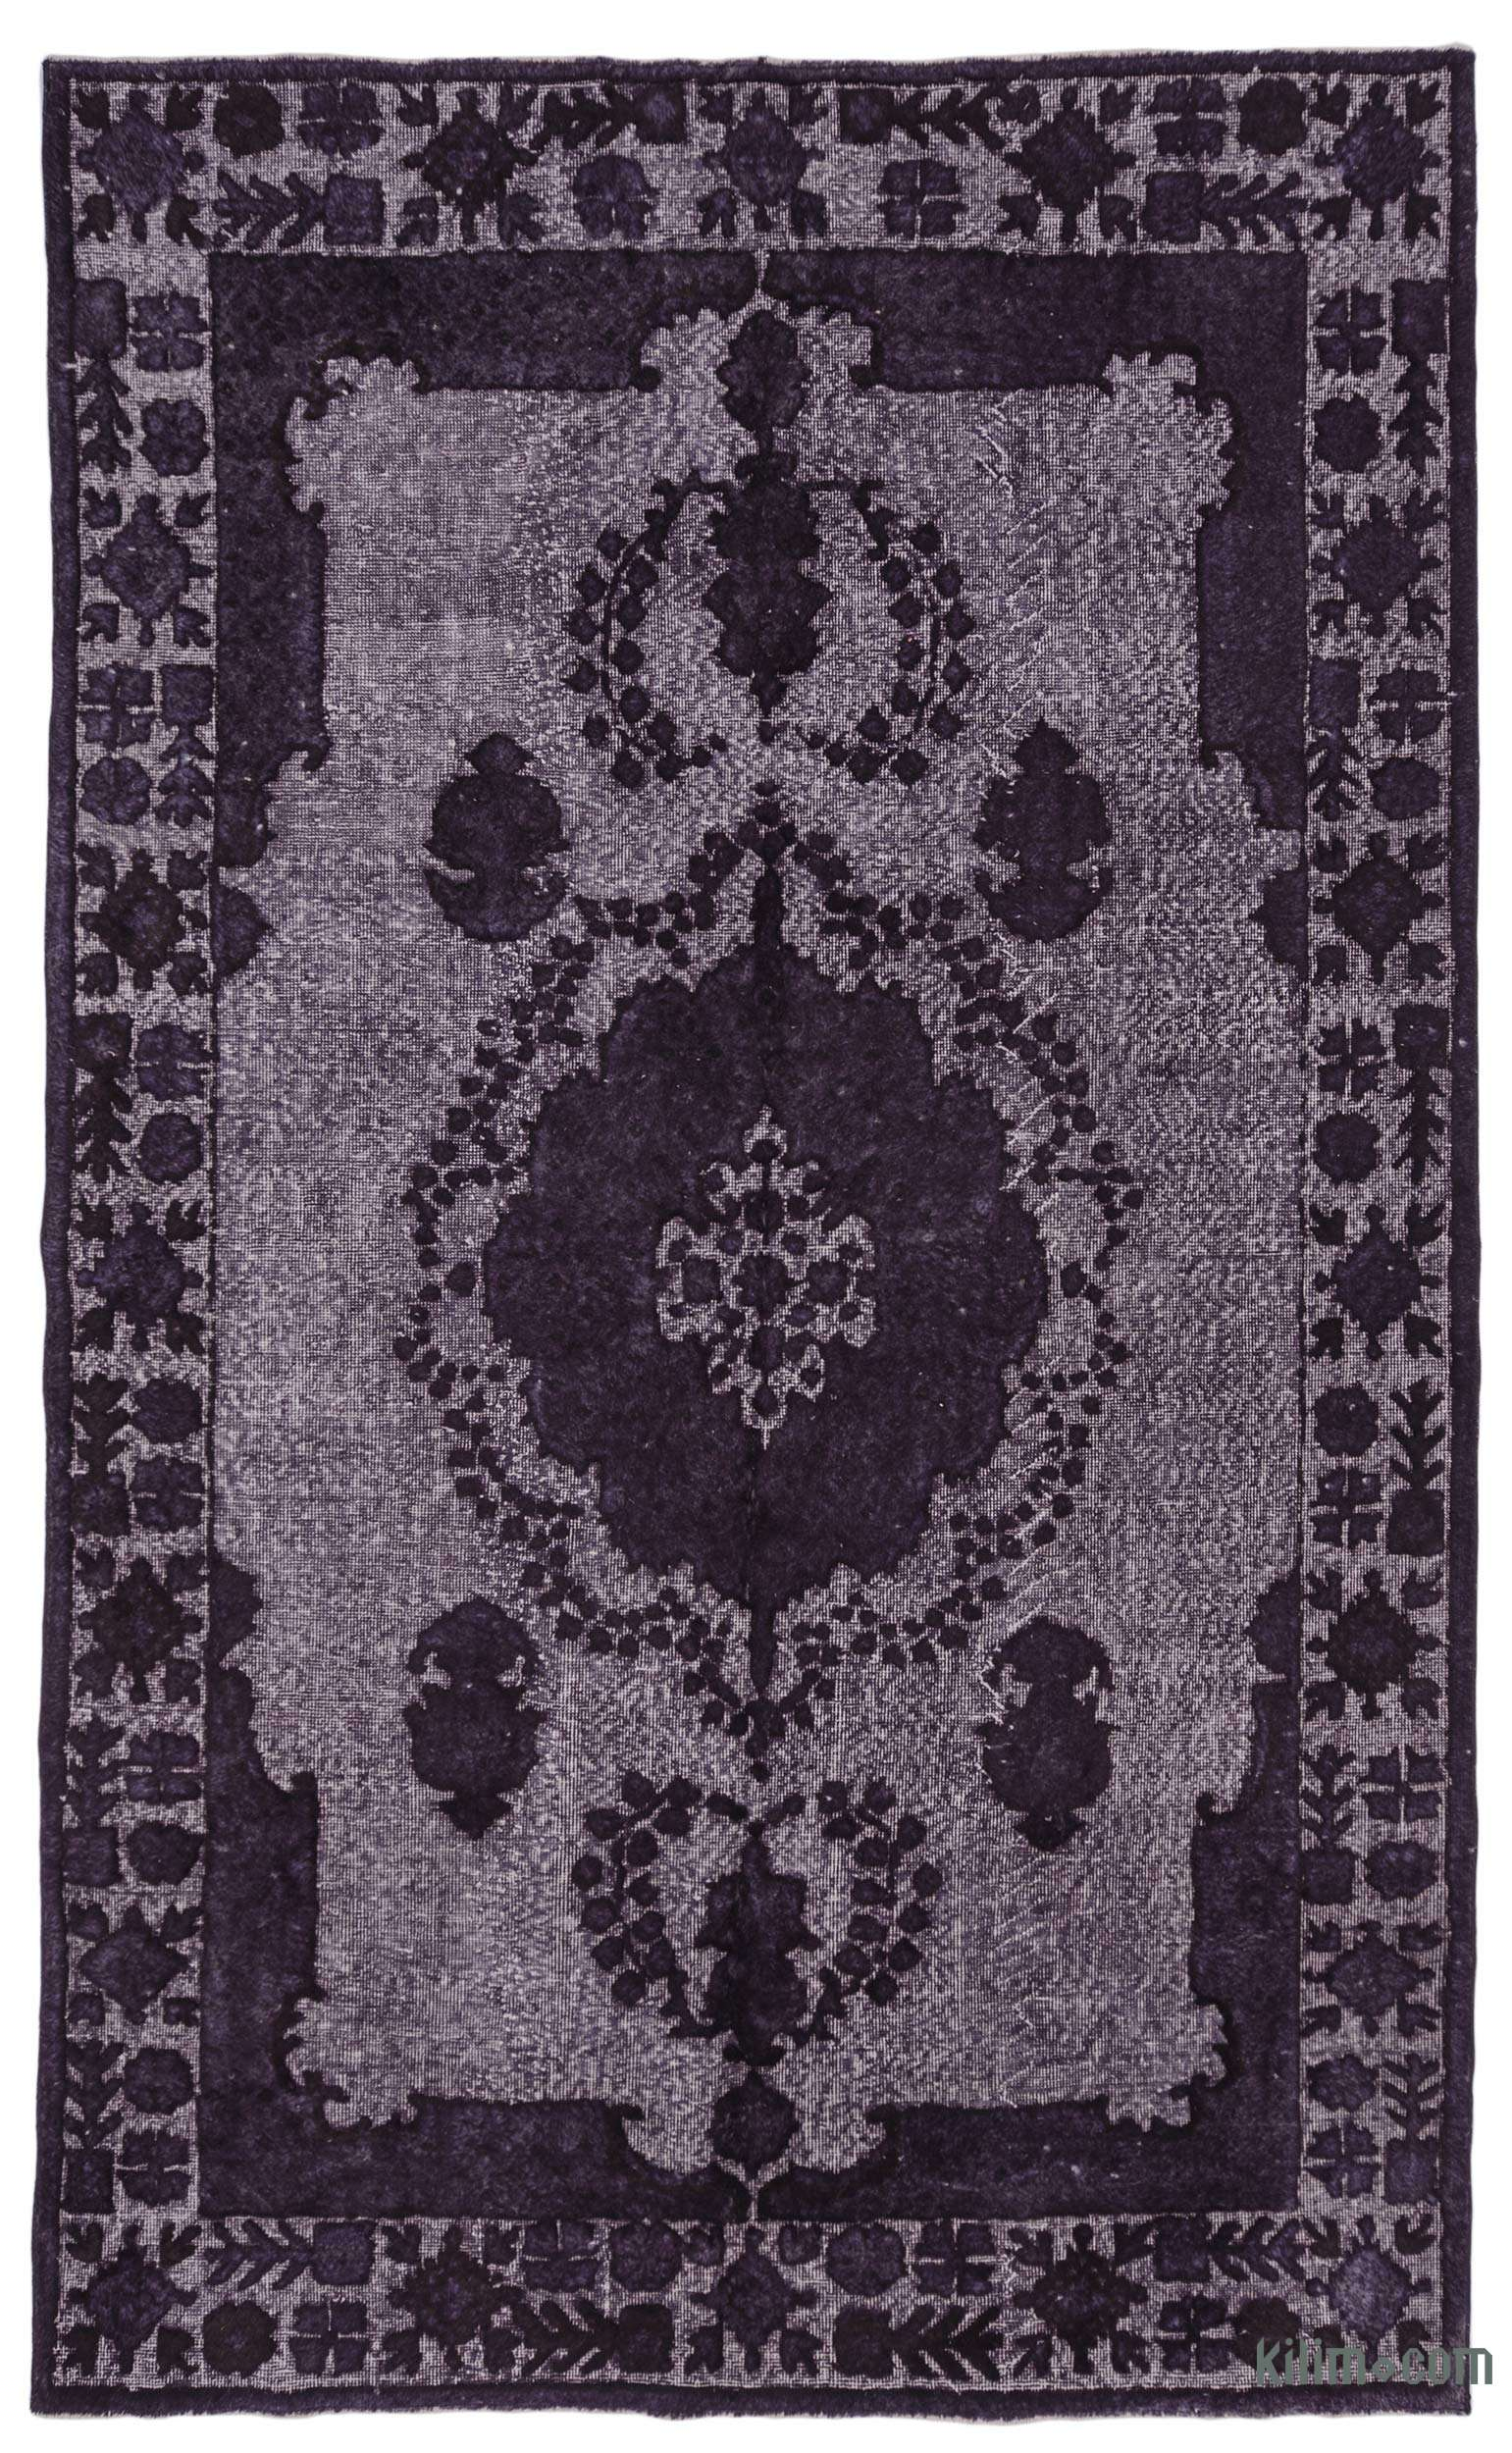 rug grey think detail house black rugs noble